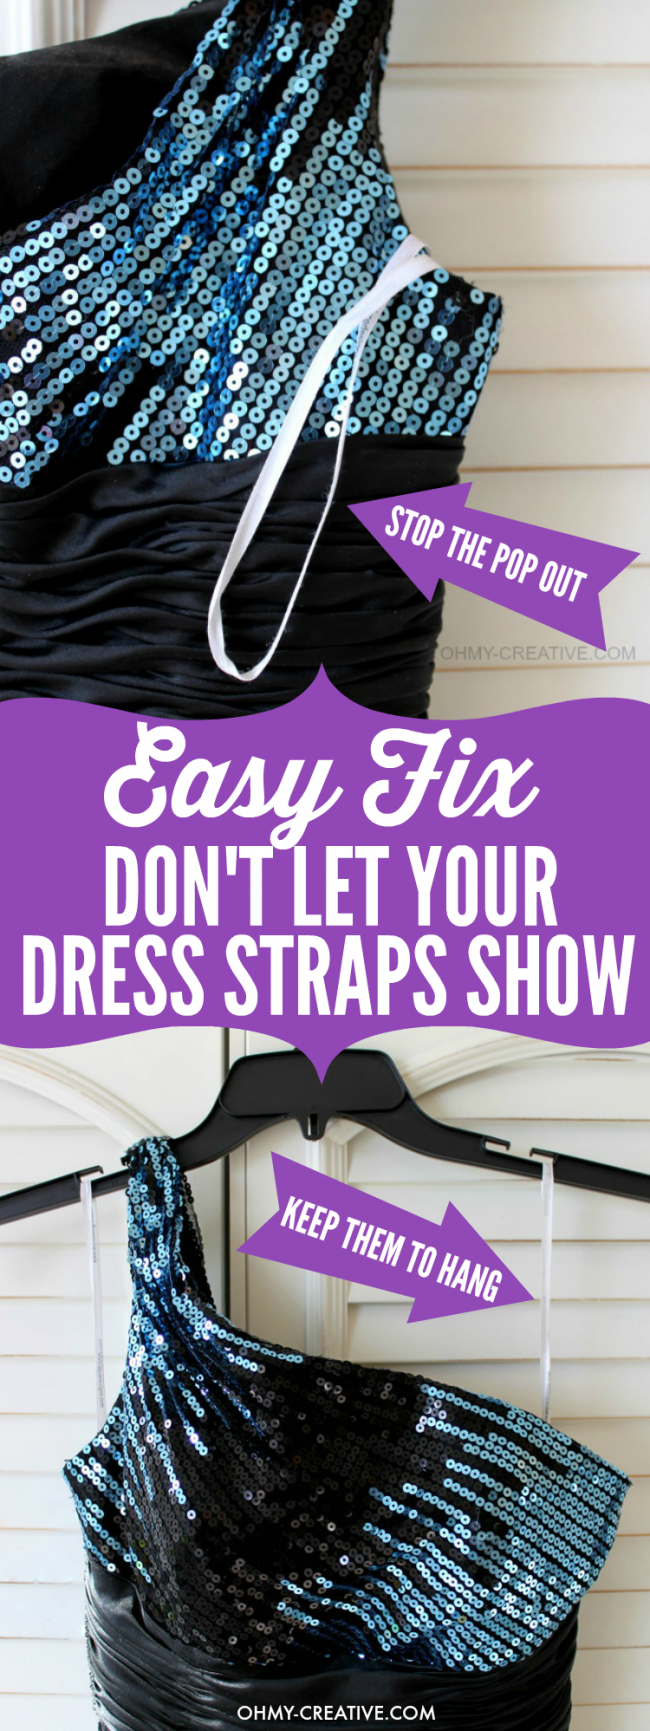 Don't be that girl! All dressed up only to have the strap hanging out the back under your arm - ugh! Have no fear I have a simple trick to keep them in place as you dance the night away! | OHMY-CREATIVE.COM